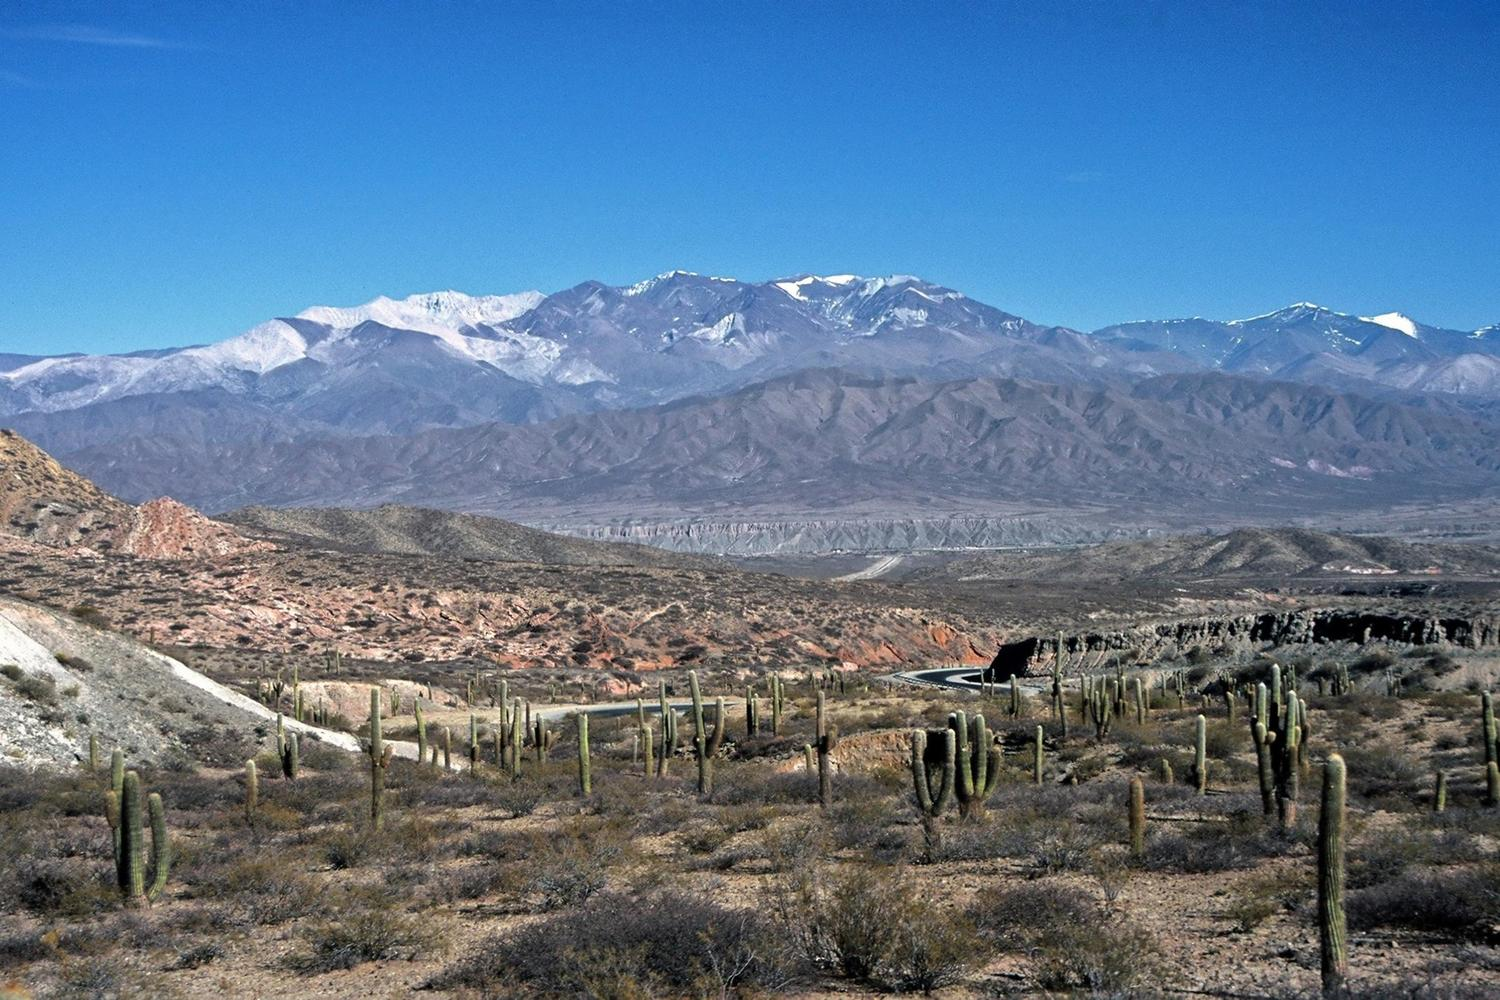 Los Cardones national park near Cachi in Argentina